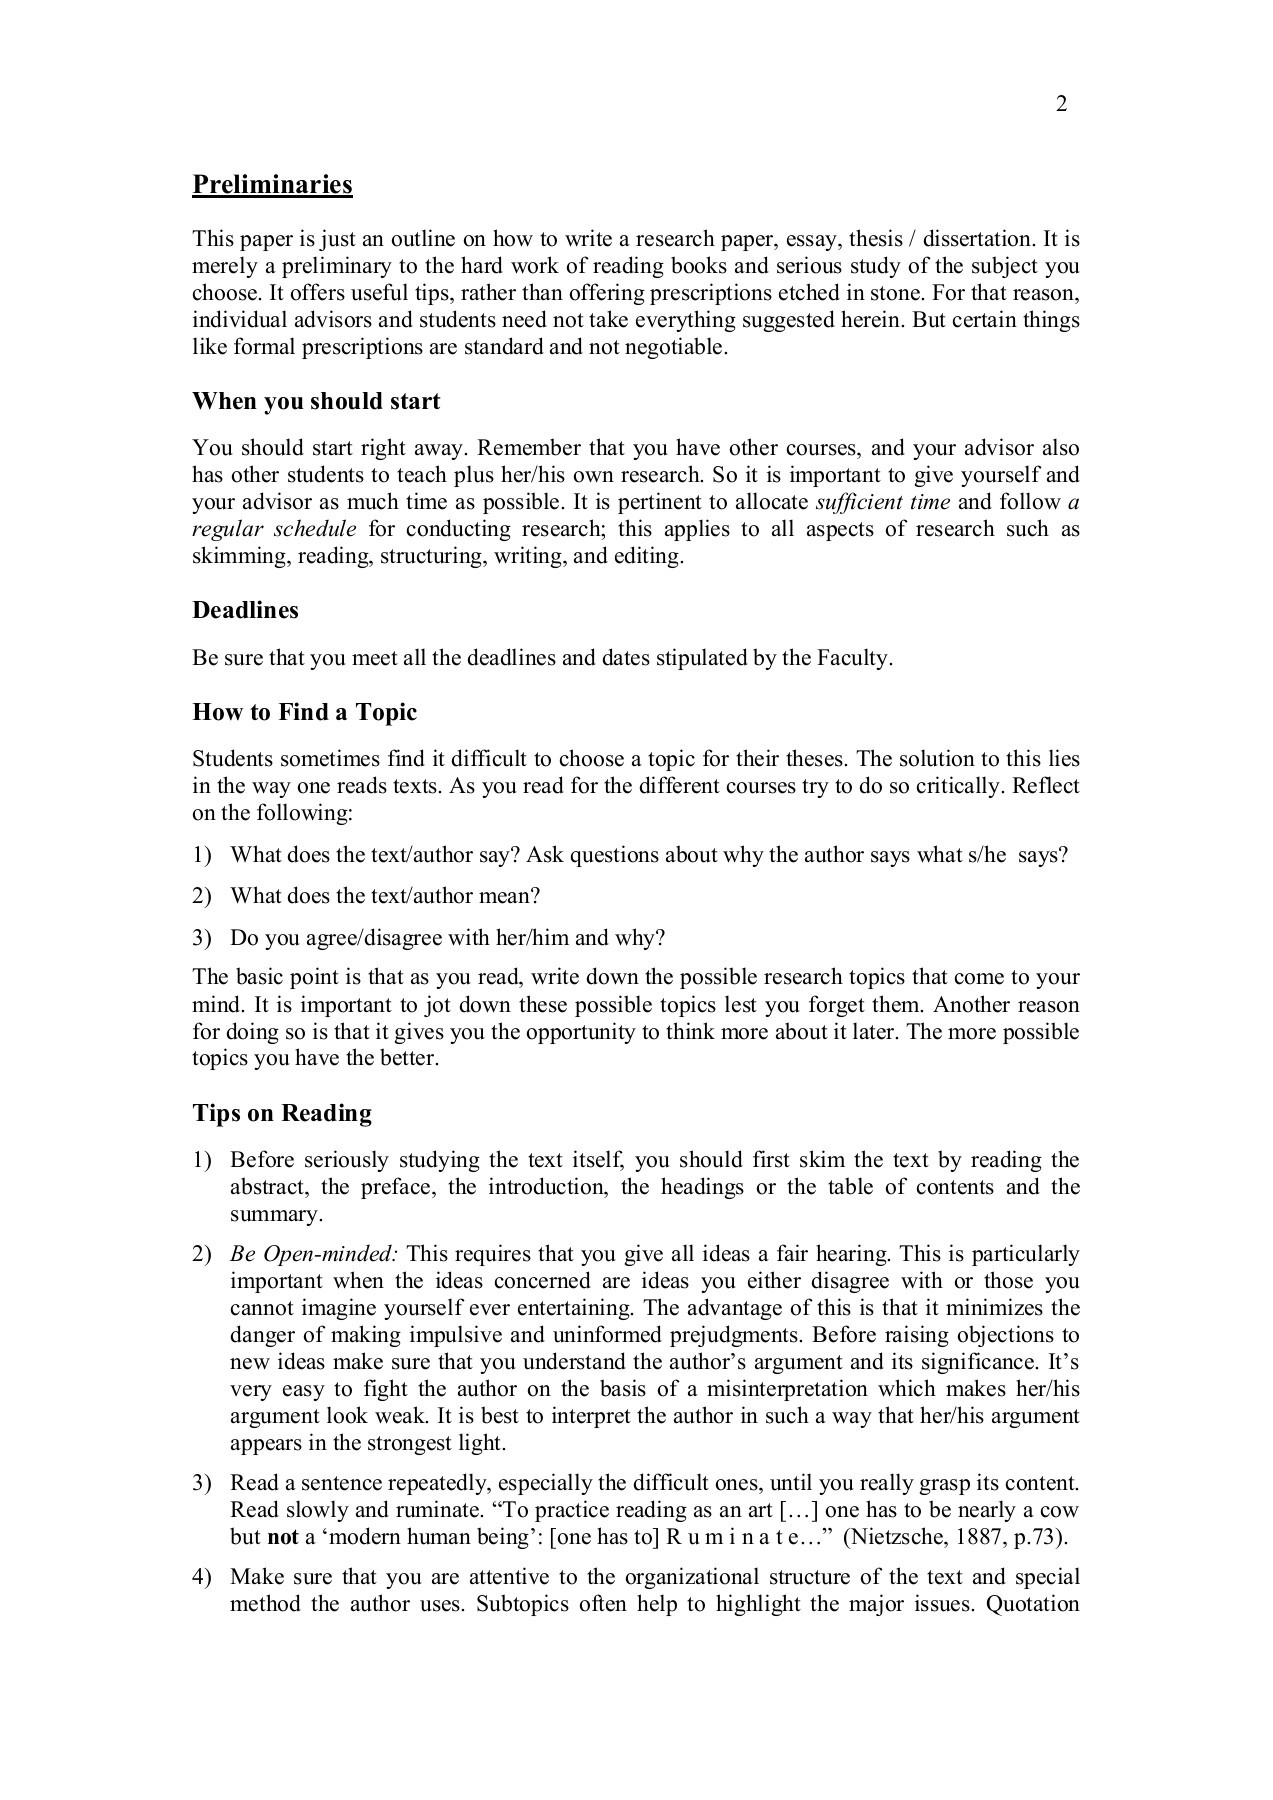 003 Research Paper Philosophy Of Religion Topics Awful Full